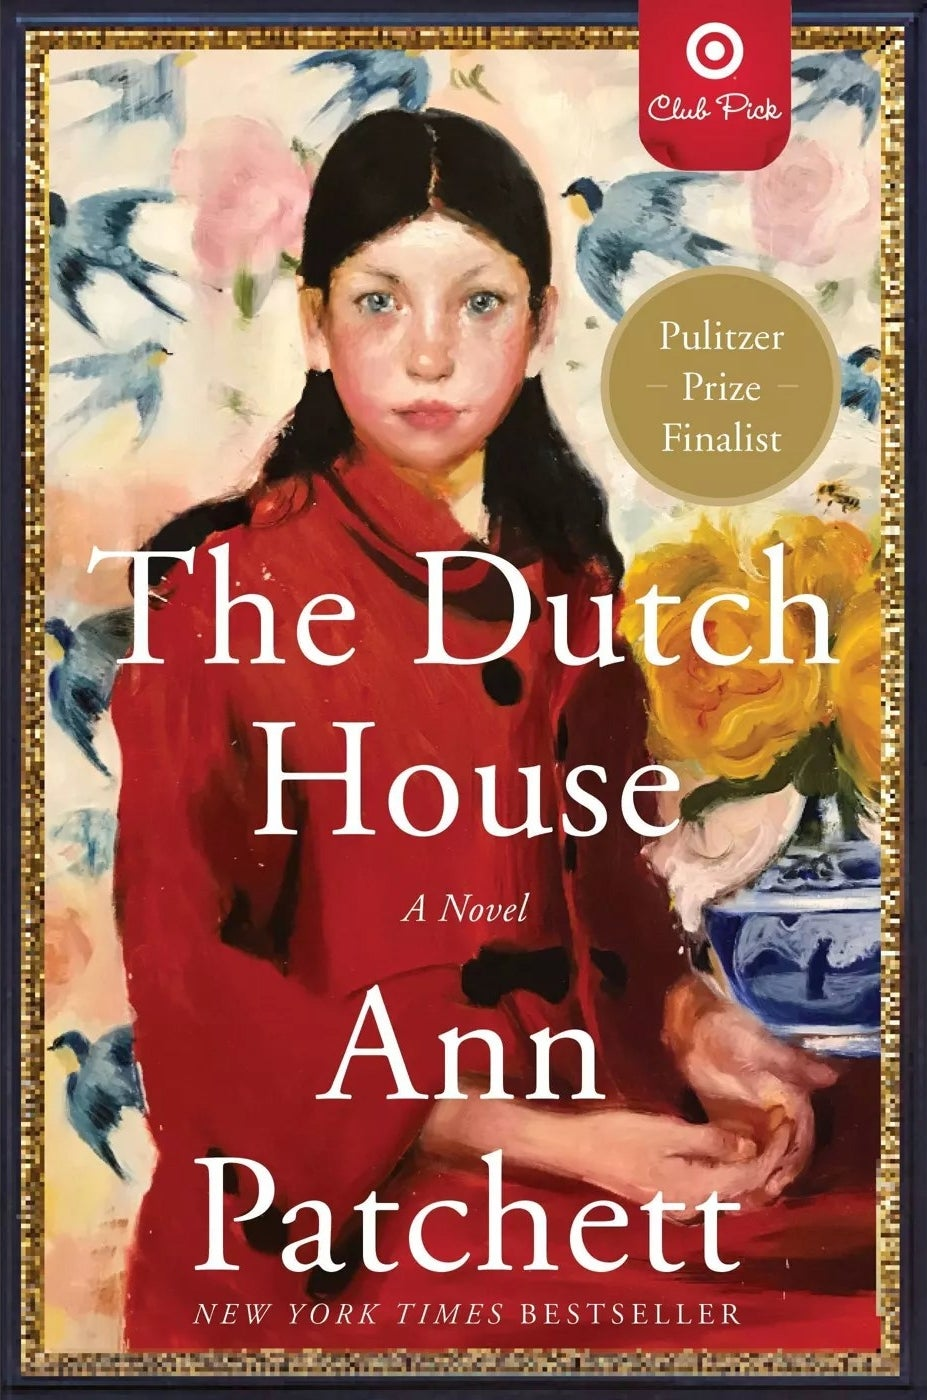 The Dutch House A Novel by Ann Patchett is a New York Times Bestseller, a Pulitzer Prize Finalist, and a Target Club Pick